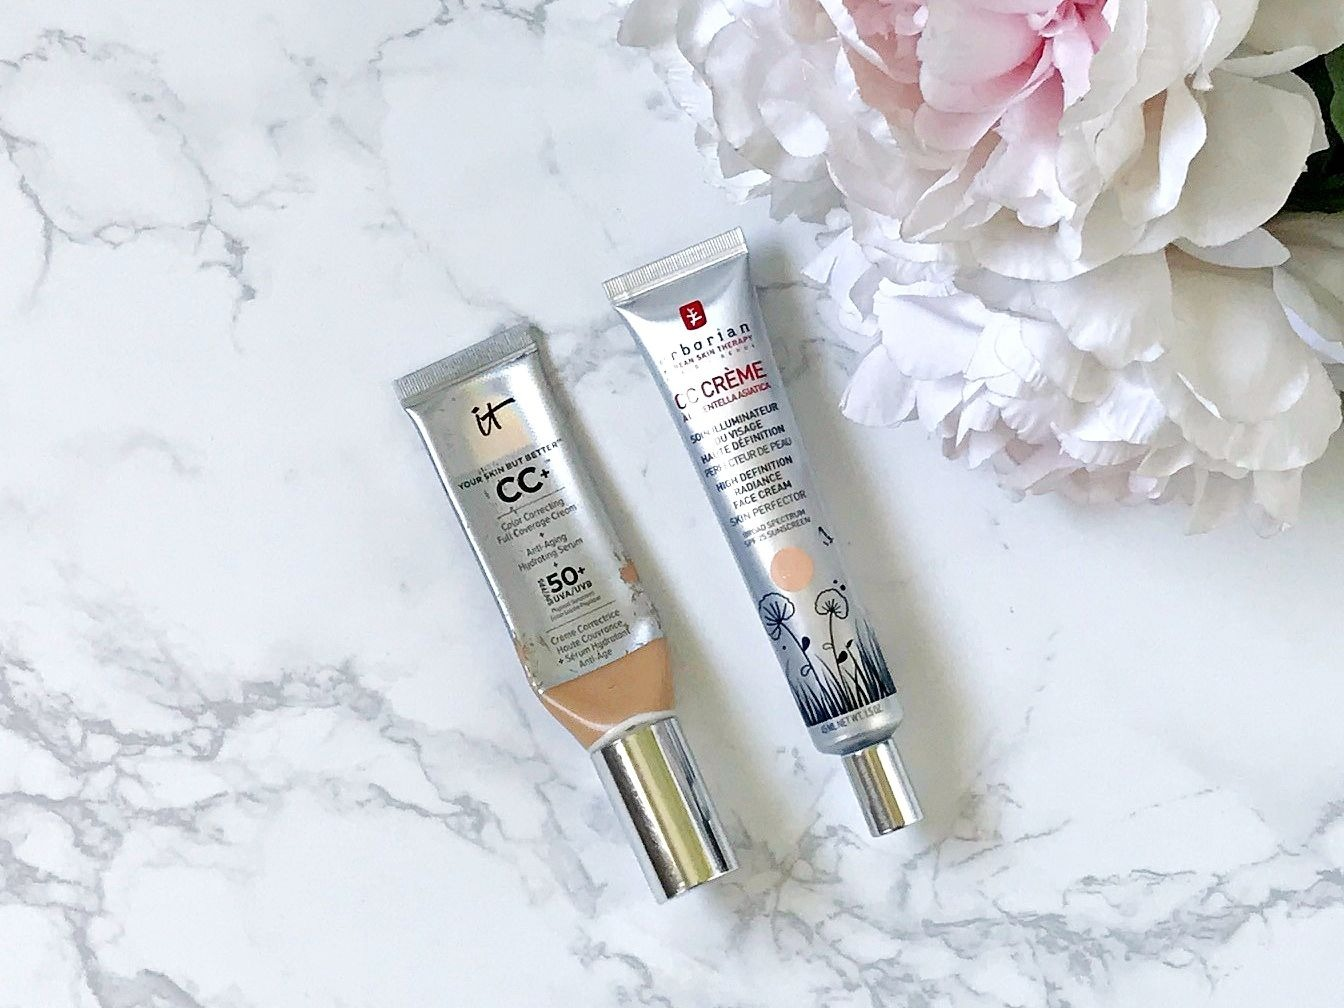 IT Cosmetics CC Cream Vs Erborian CC cream